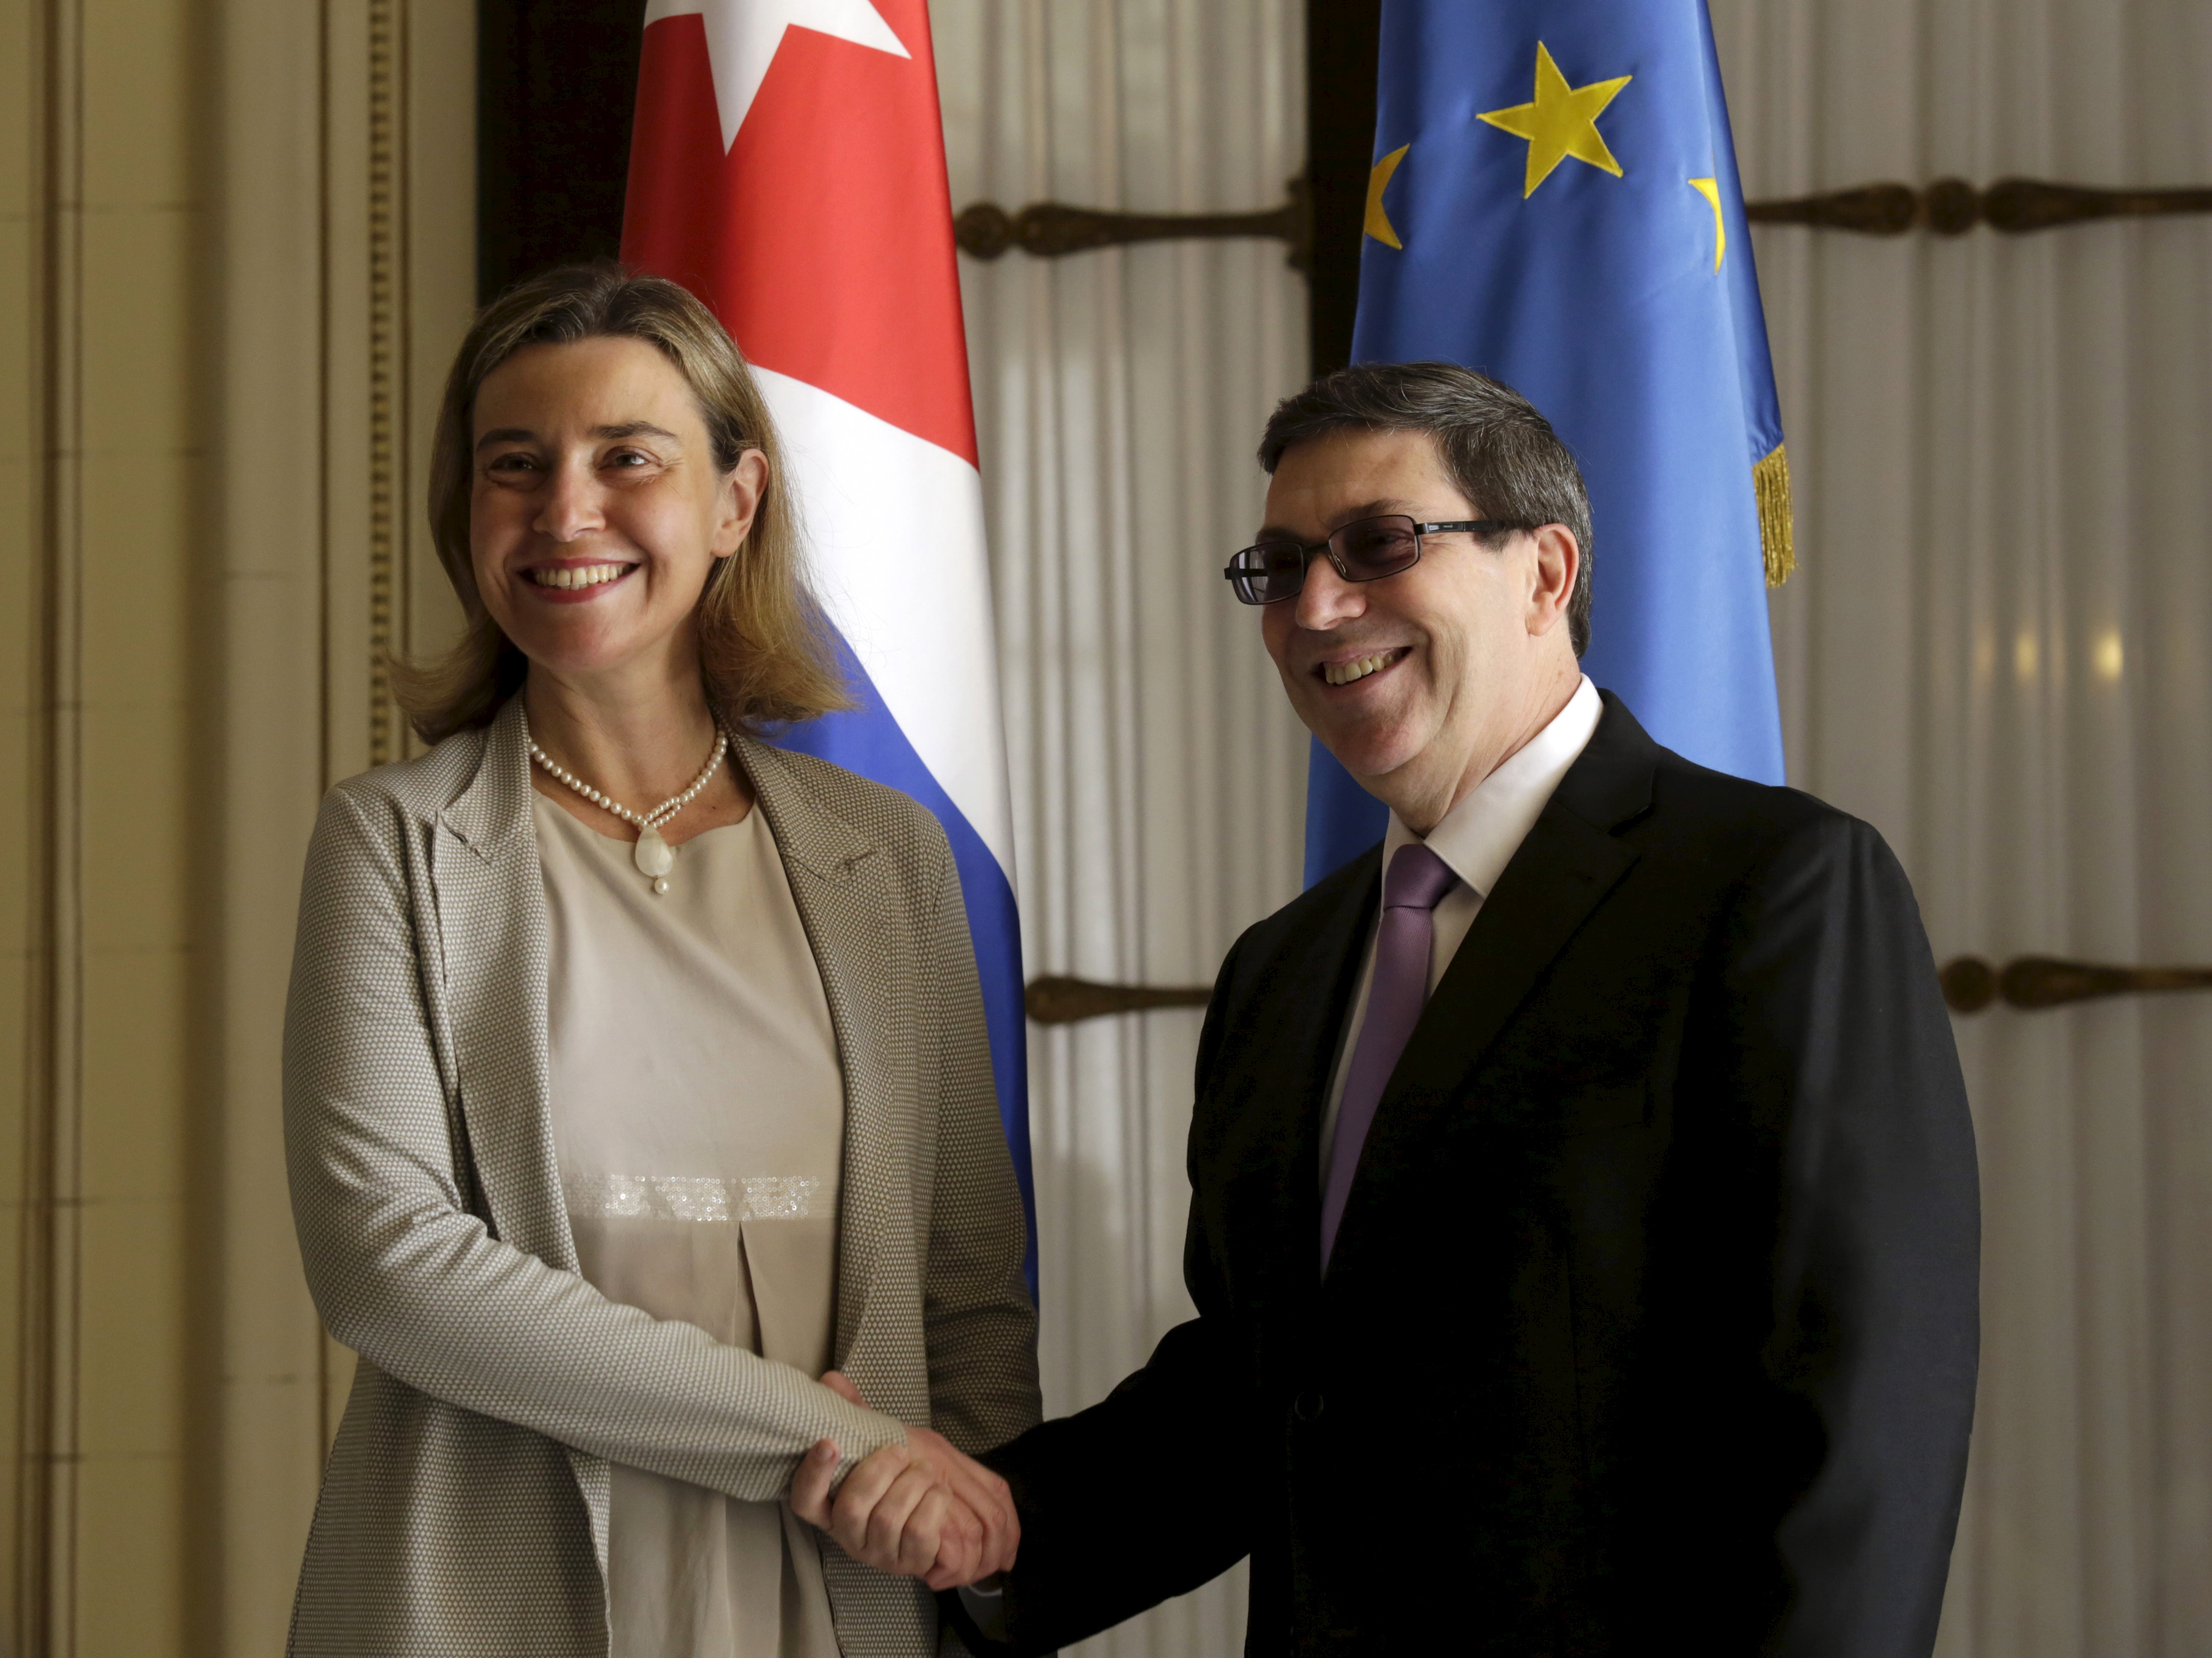 EU foreign policy chief Federica Mogherini (L) shakes hands with Cuba's Foreign Minister Bruno Rodriguez Parrilla during their meeting in Havana March 11, 2016. REUTERS/Enrique de la Osa - RTSADJ9